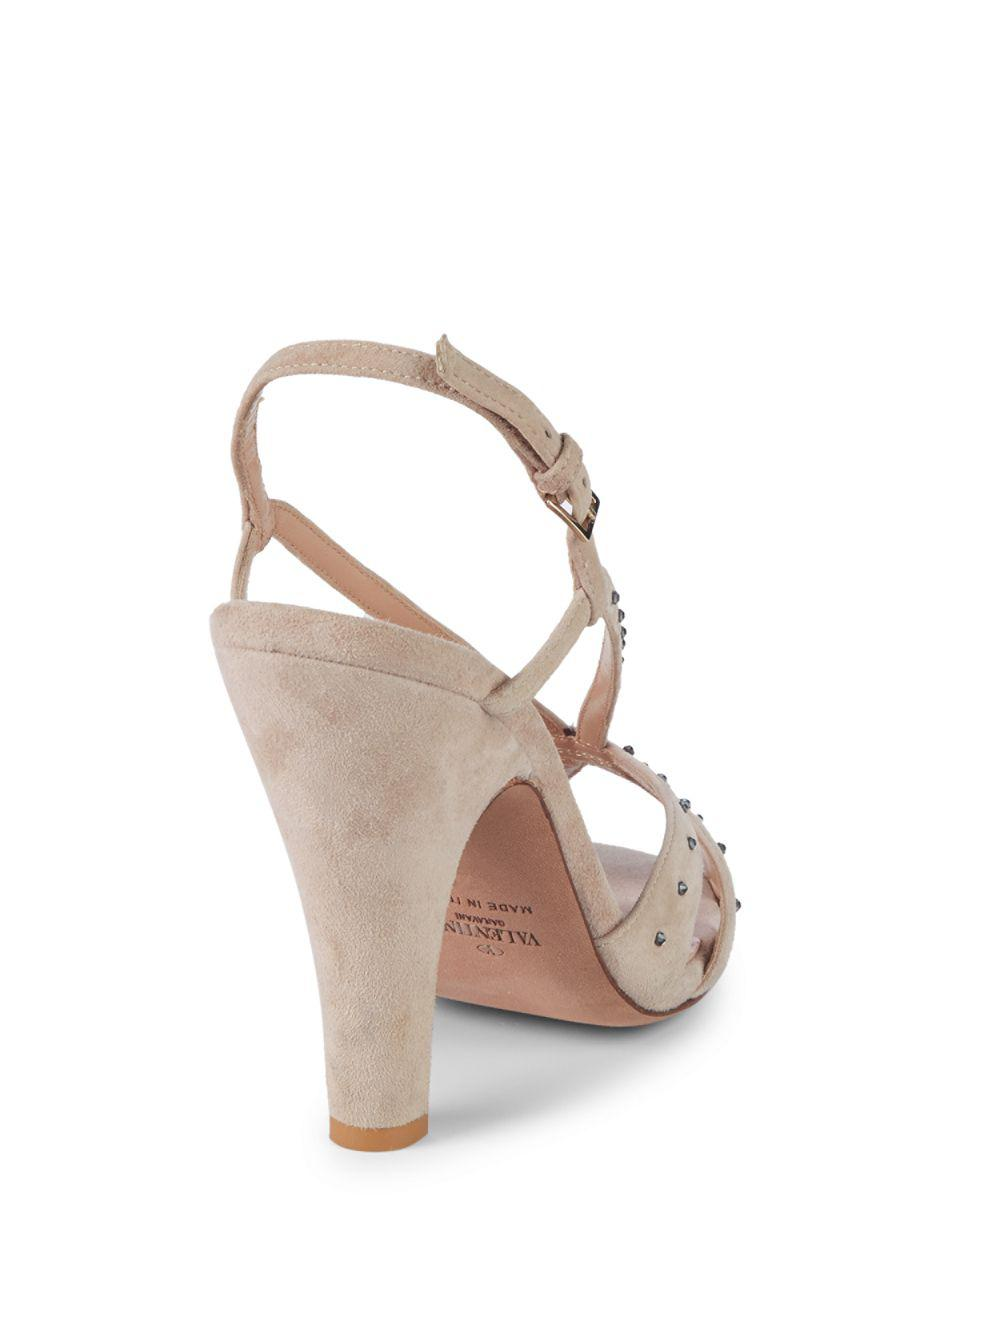 41a8b46bd47 Lyst - Valentino Embellished Suede Sandals in Natural - Save 8%